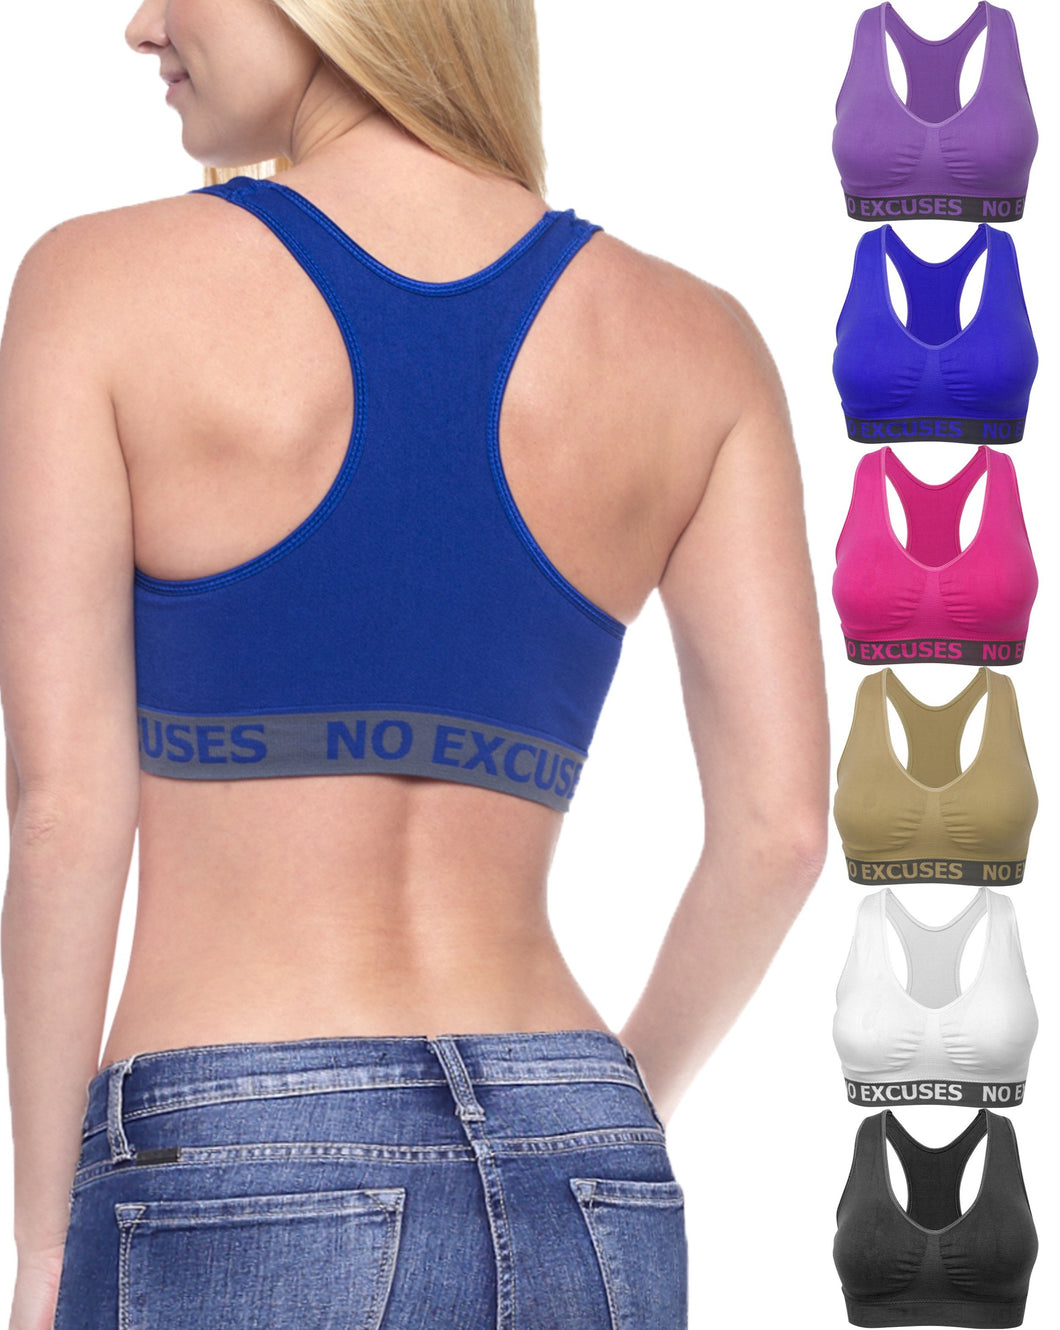 Racerback Wirefree Bras (6 Pack)